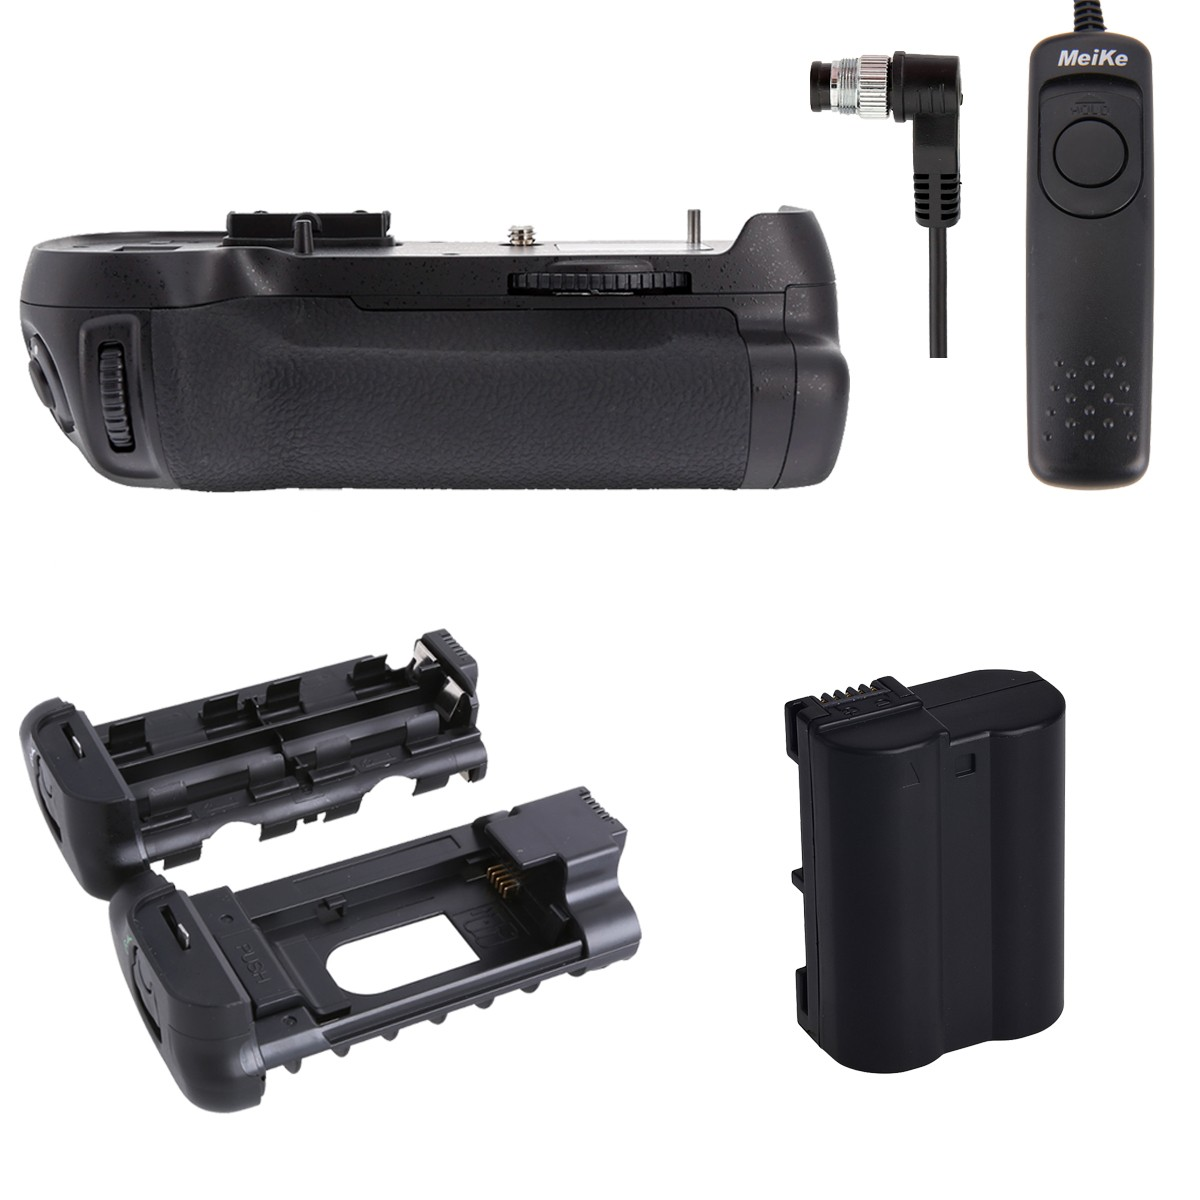 Meike MK-D800 Battery Grip for Nikon D800 D810 D800E as MB-D12 + EN-EL15 +Shutter Release meike mk dr750 mb d16 built in 2 4g wireless control battery grip for en el15 nikon d750 dslr camera